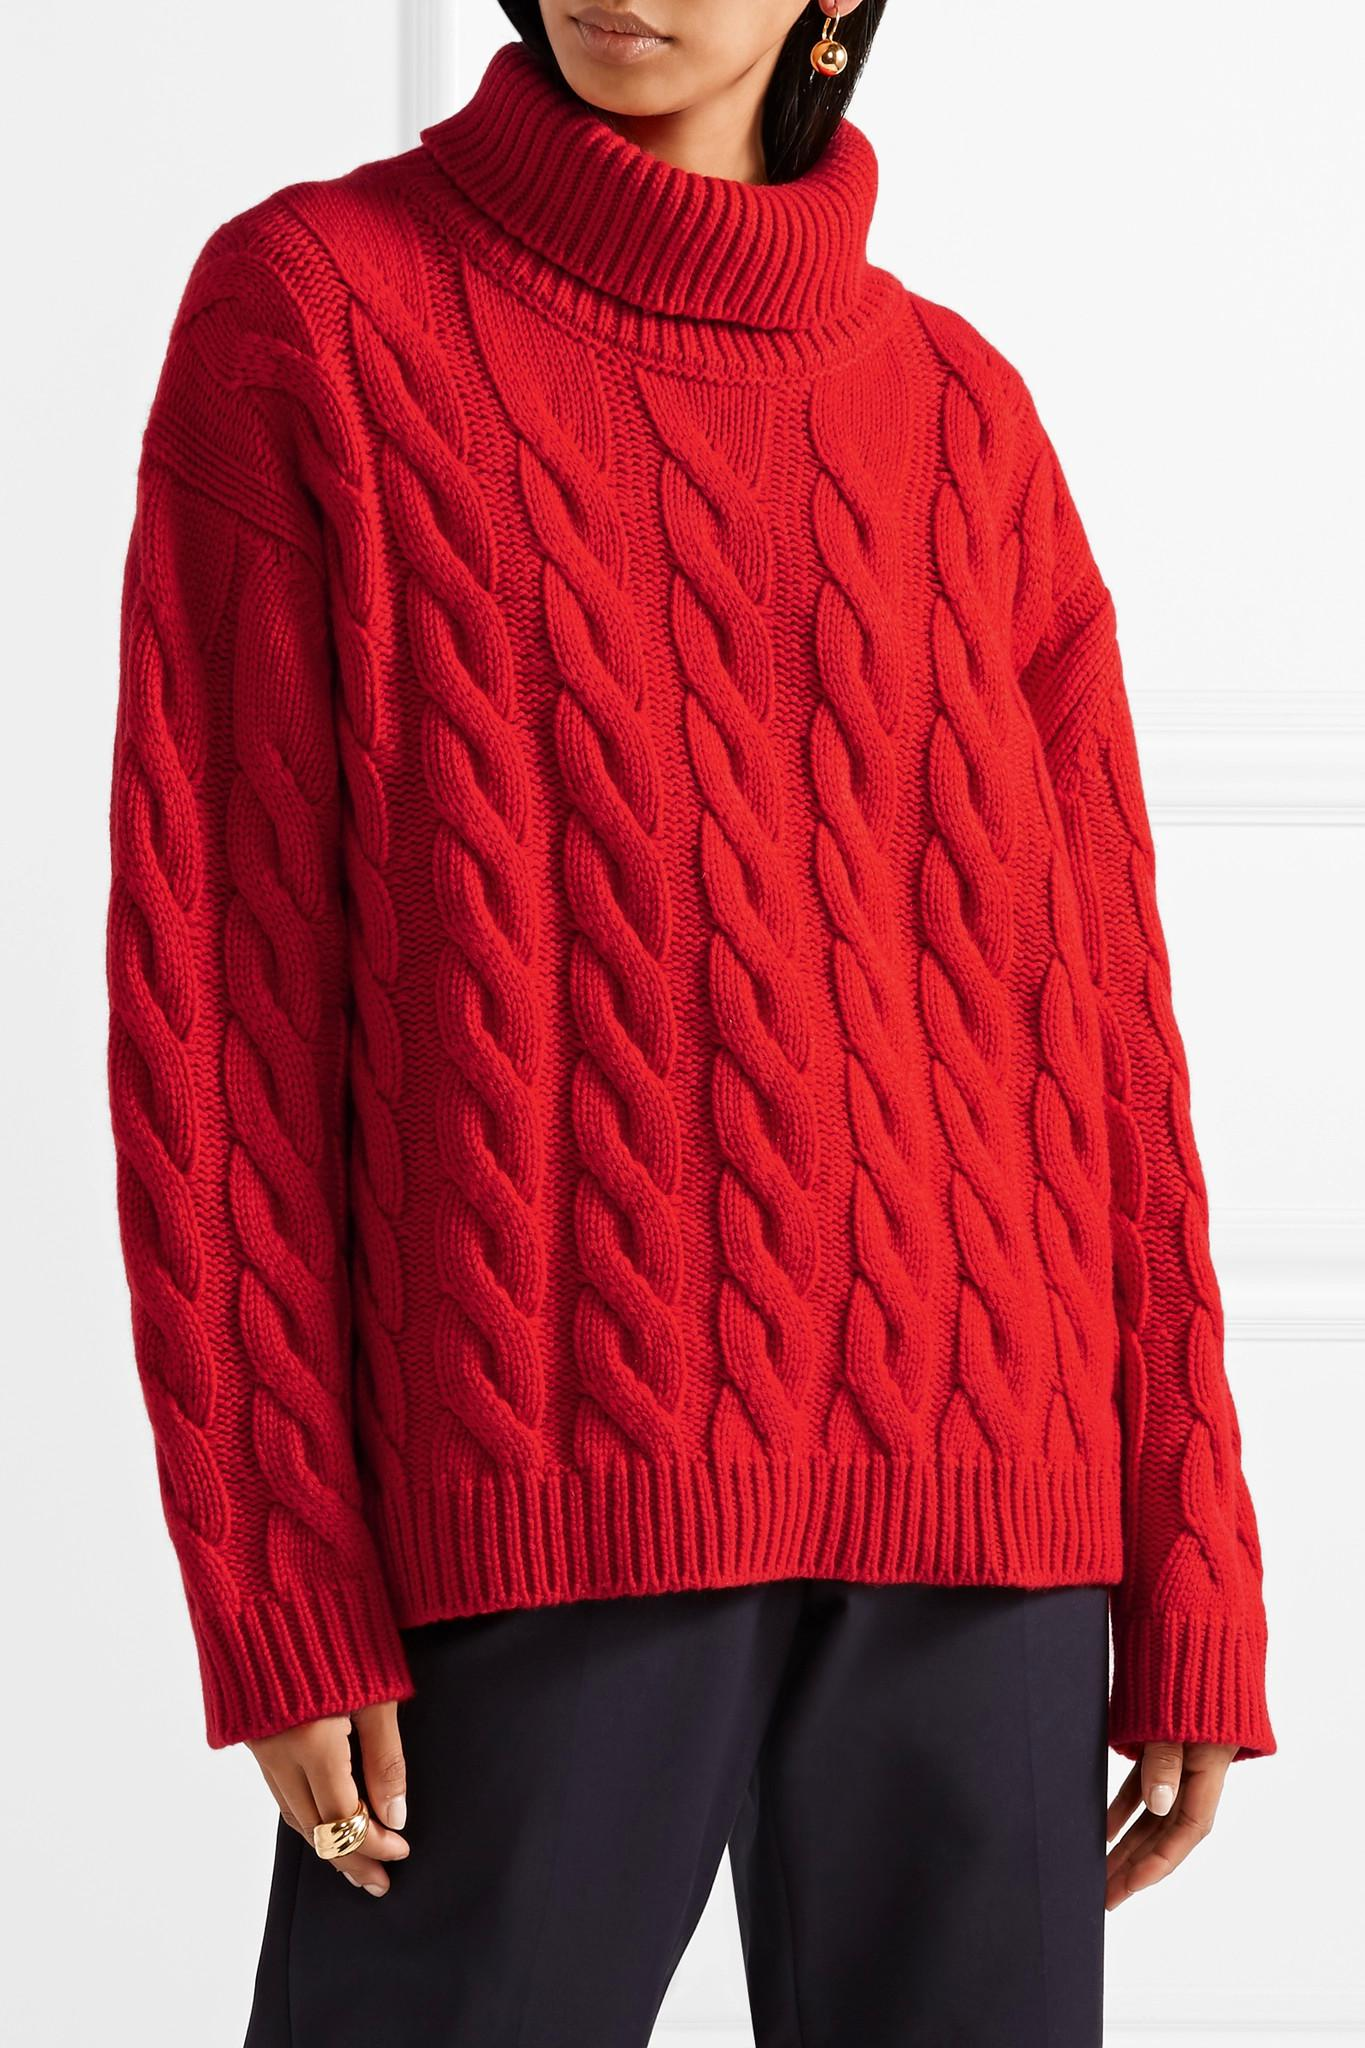 Mansur gavriel Cable-knit Cashmere Turtleneck Sweater in Red | Lyst